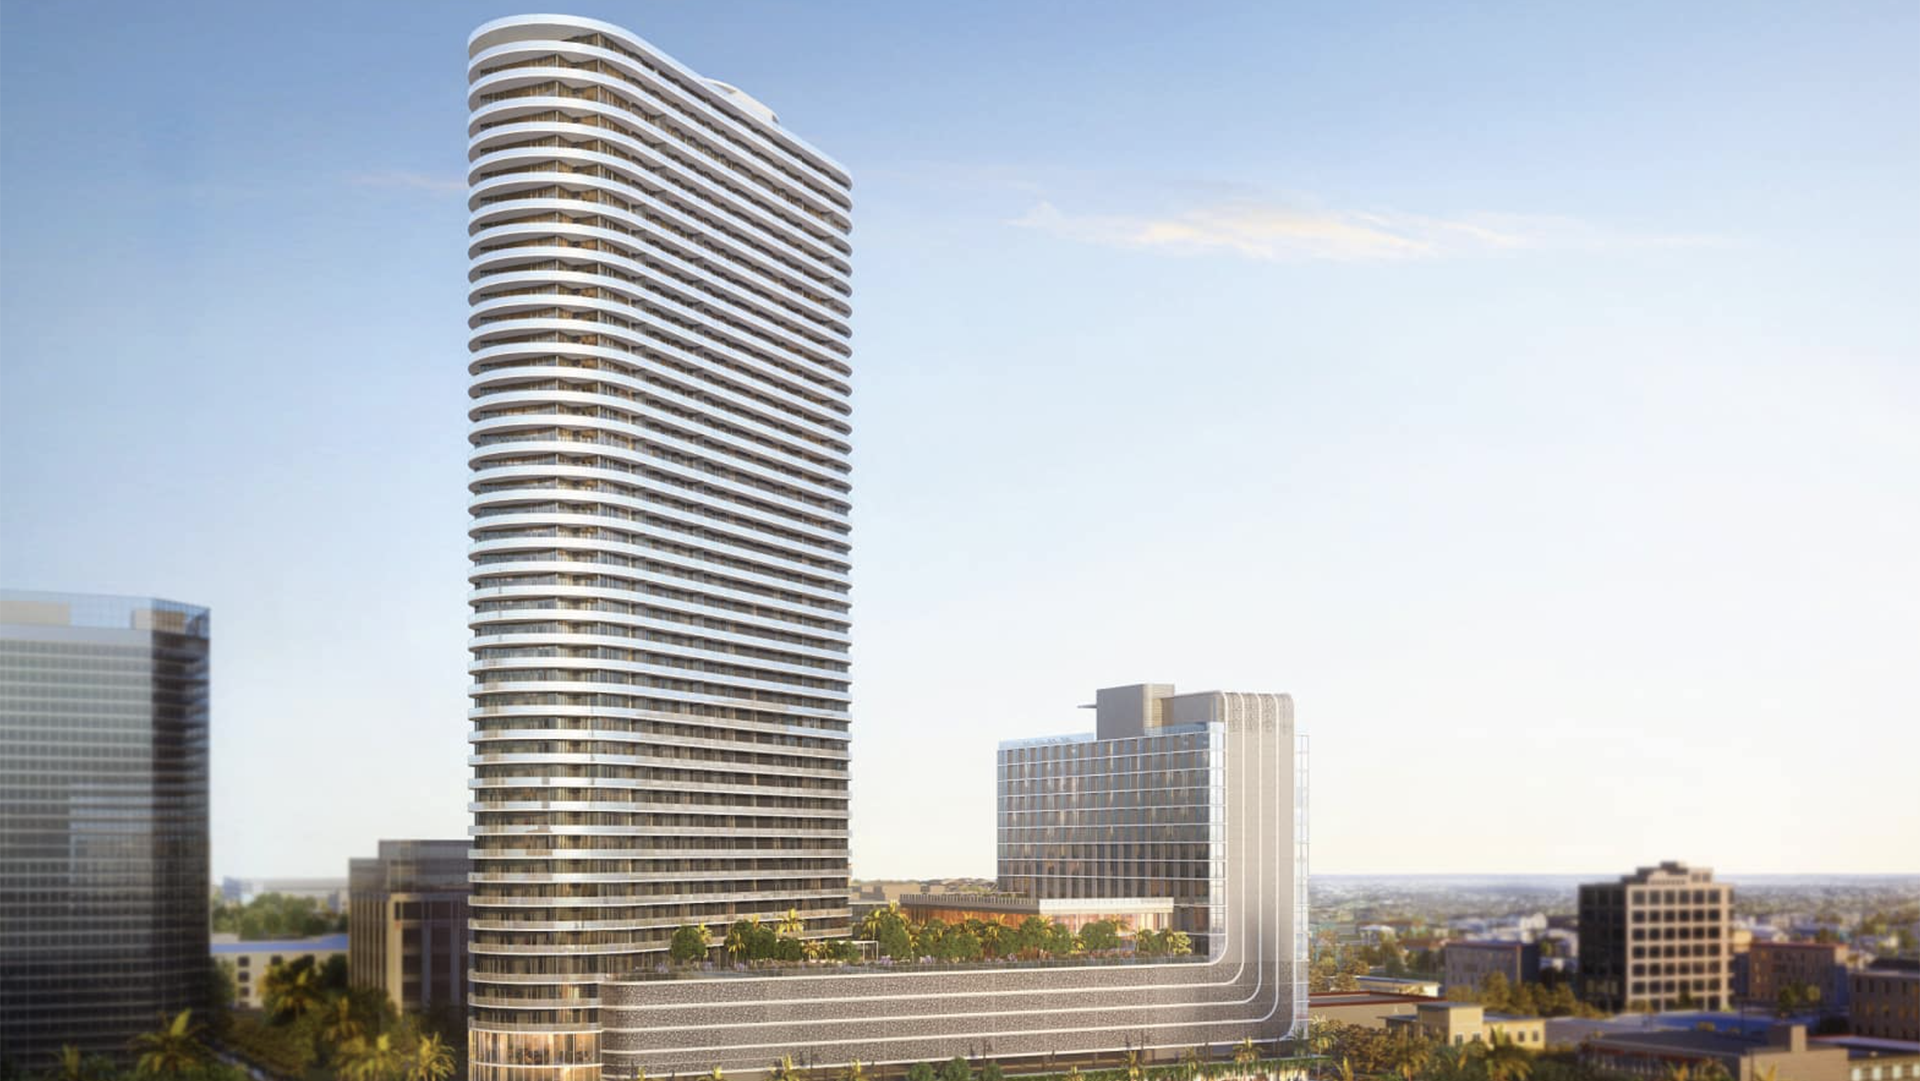 Rendering of a 46-story tower